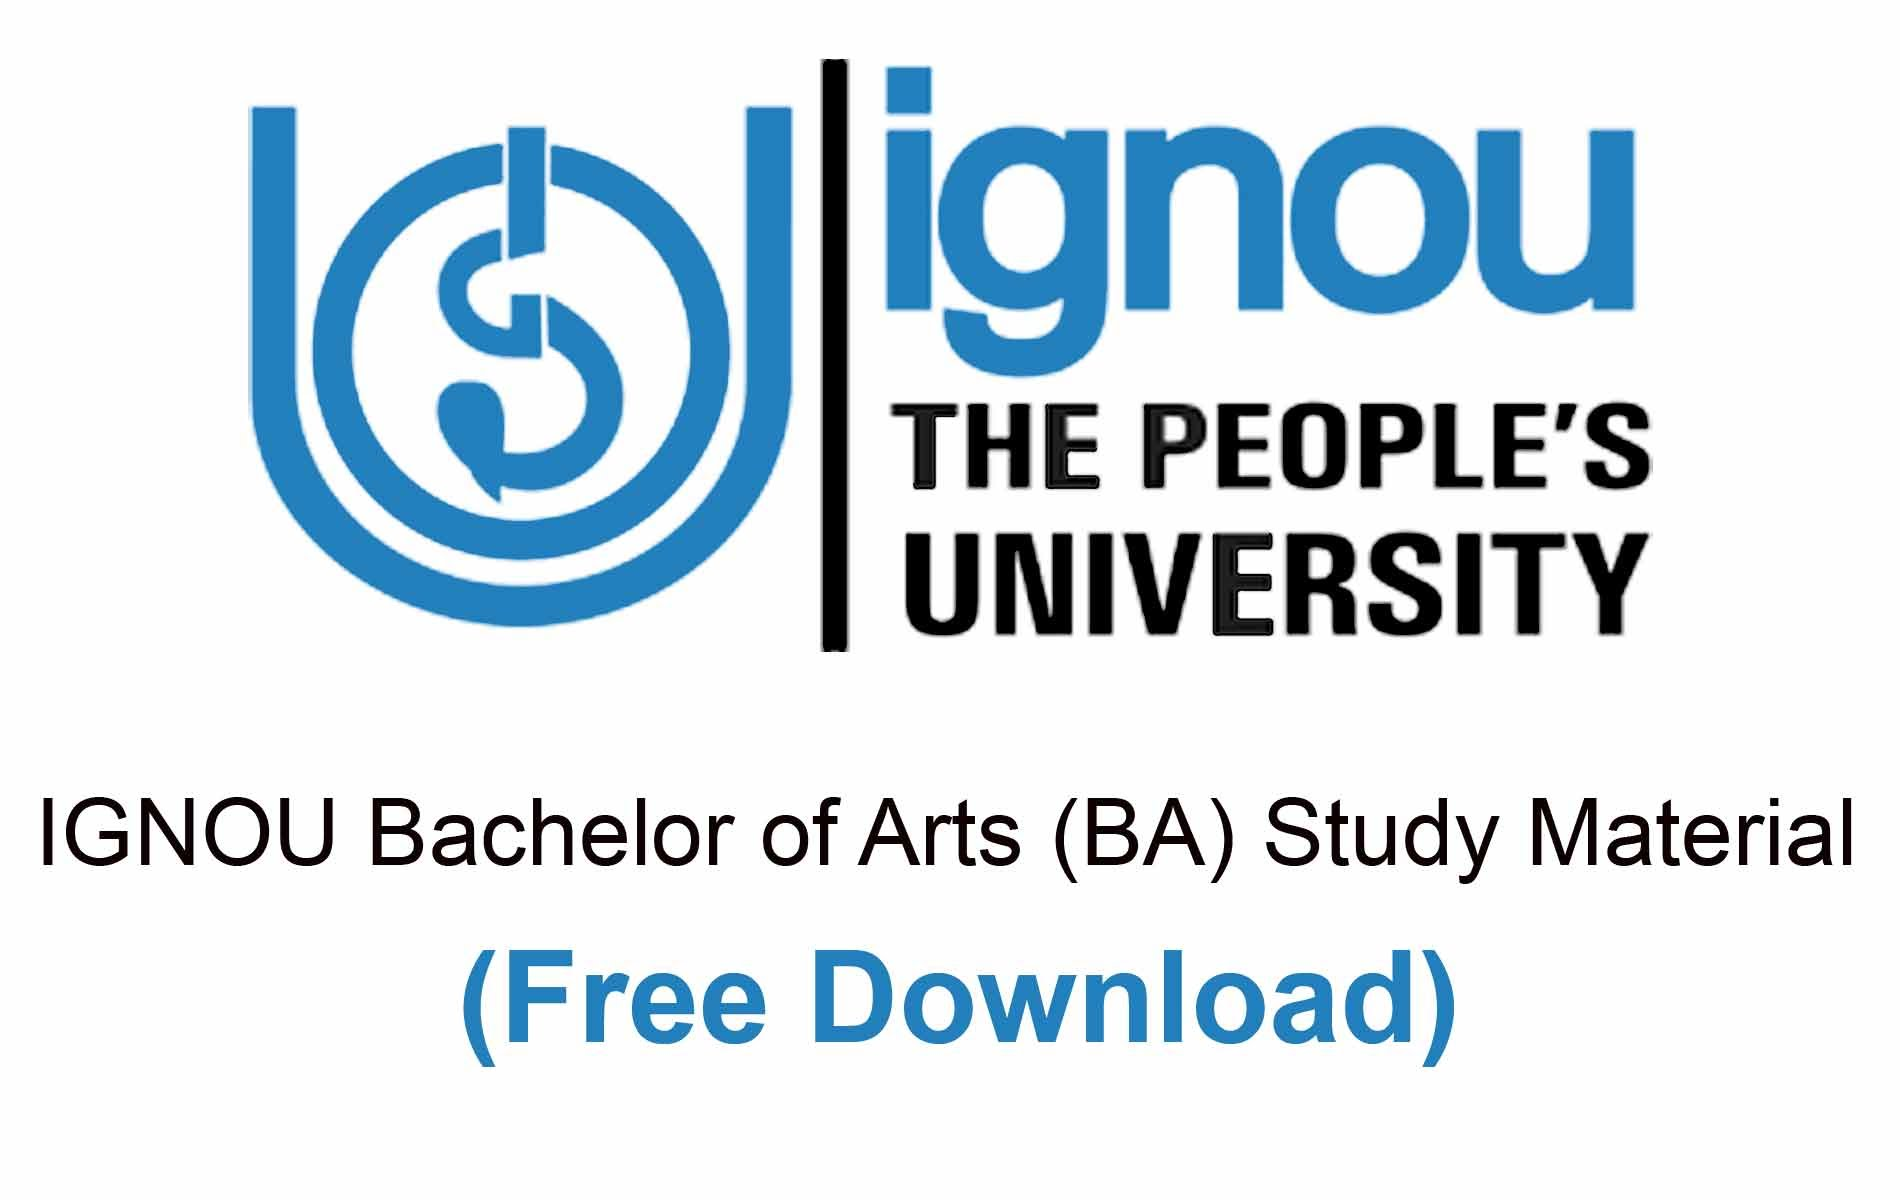 ignou ba study material download free